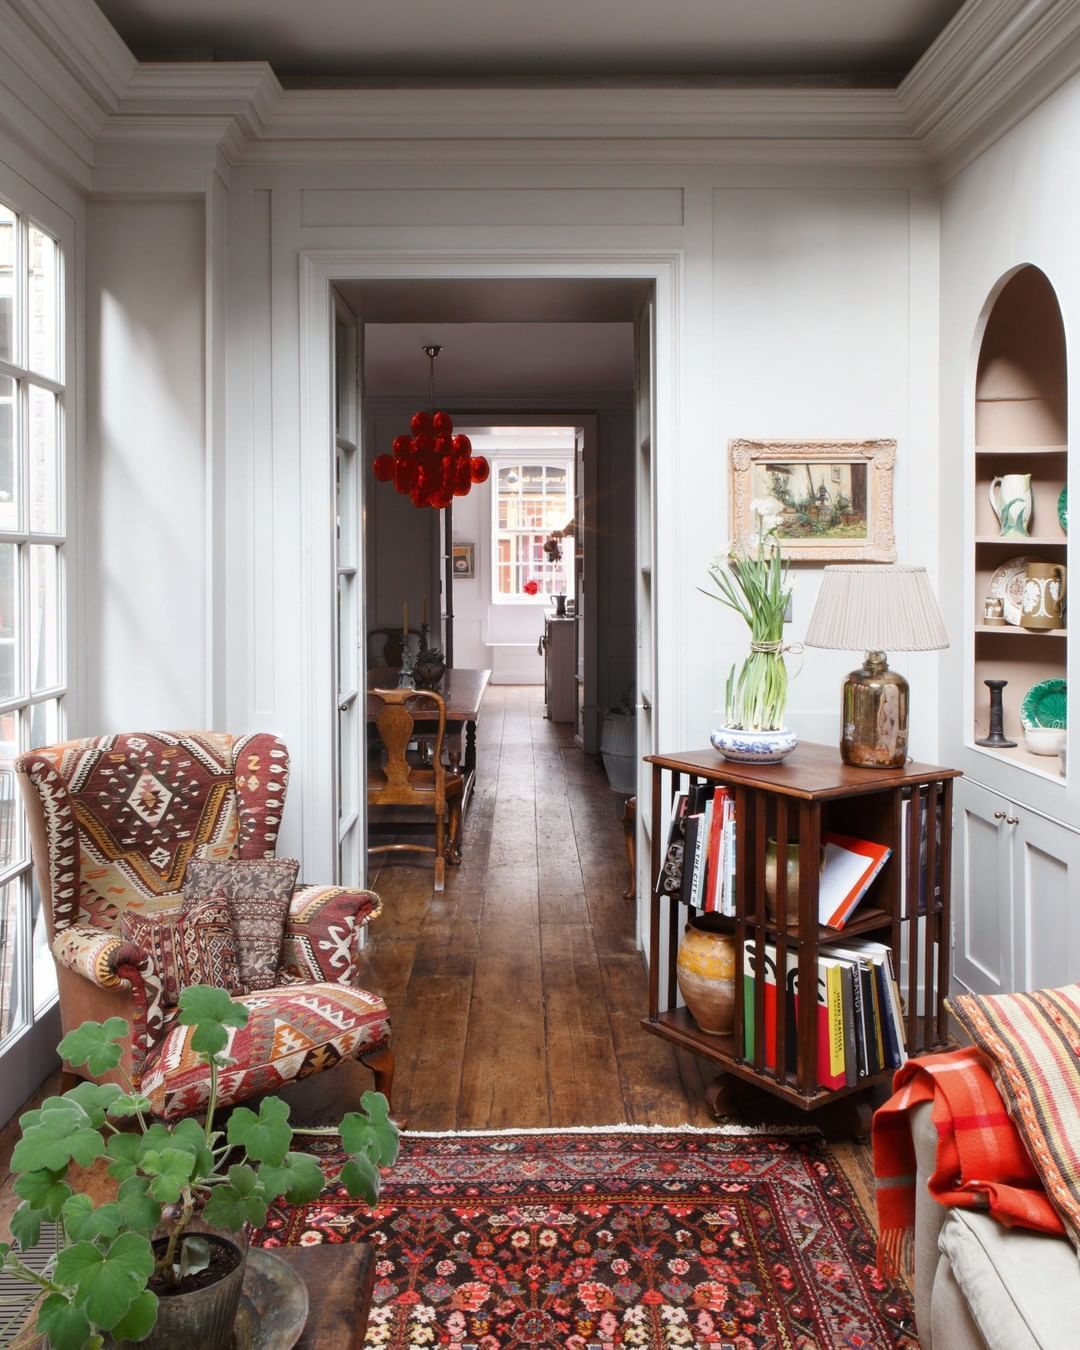 House Garden Magazine On Instagram Georgian Houses In Spitalfields Rarely Become Available So When The Owner Of Th In 2020 Decor House Interior Cheap Office Decor